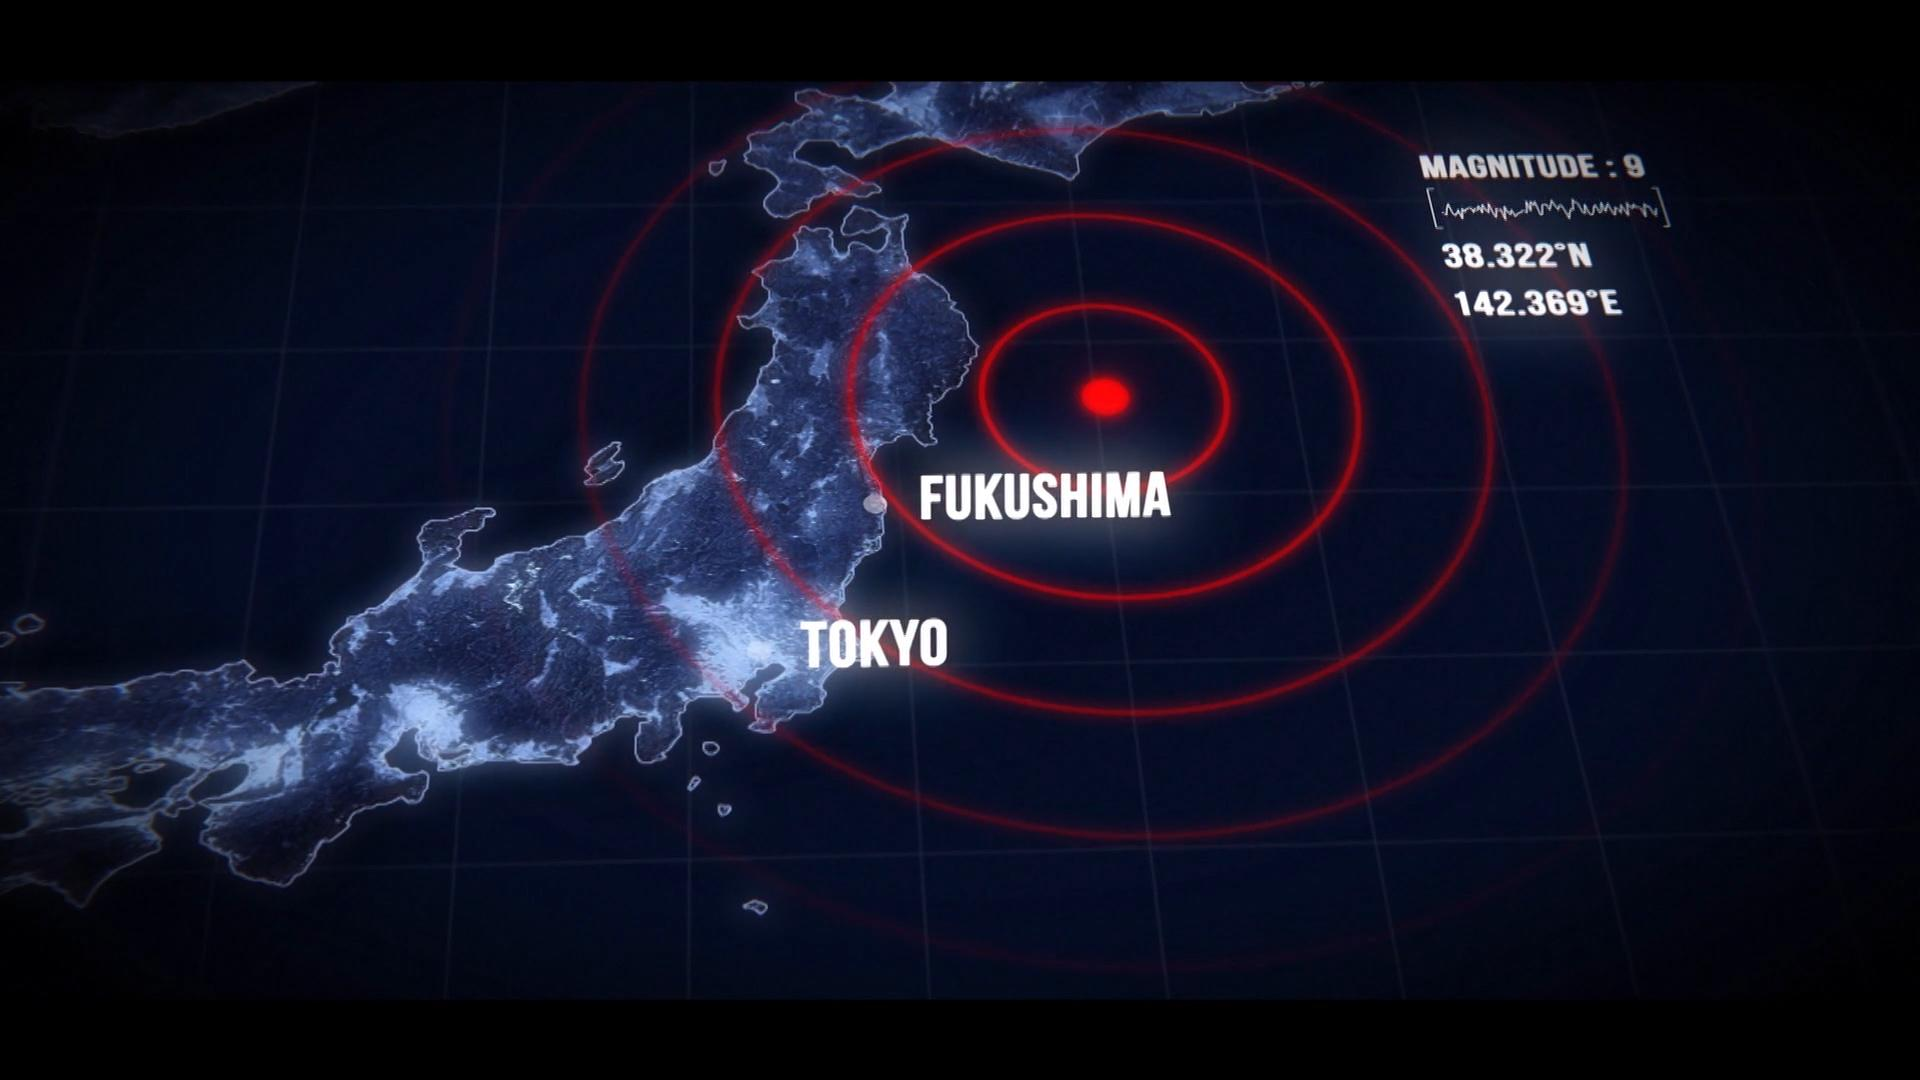 The Tohuku earthquake struck just off Japan. This triggered a tsunami which caused the nuclear meltdown at Fukushima.